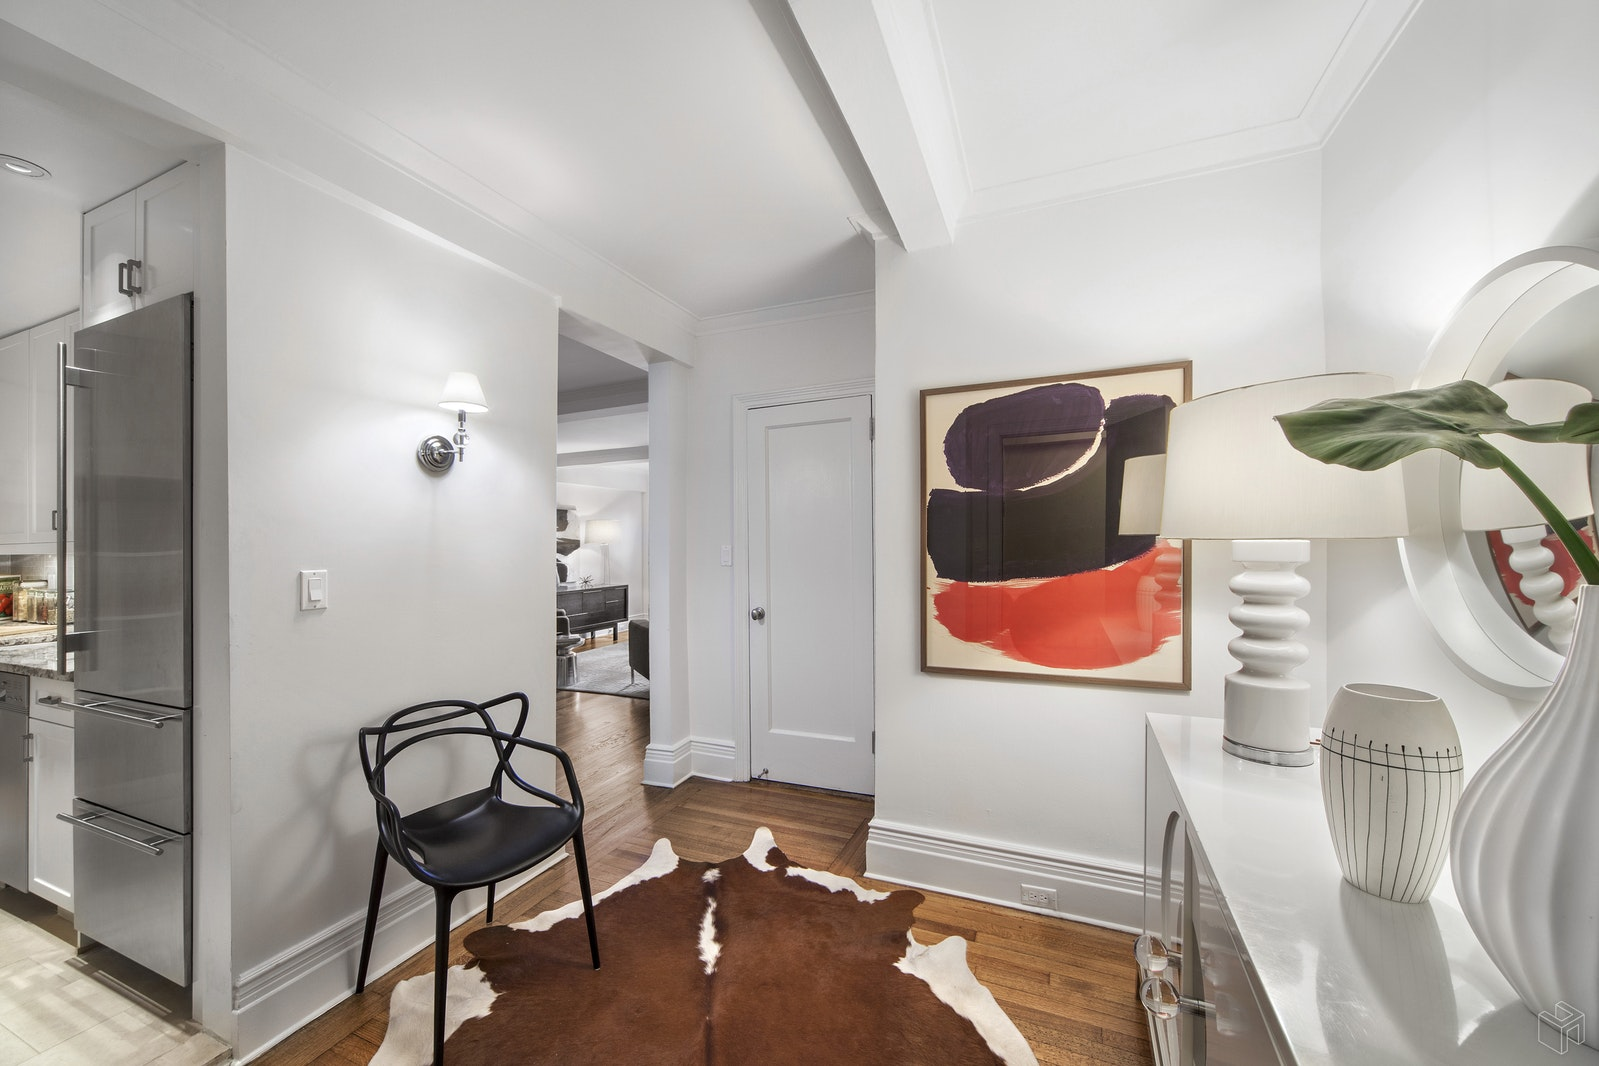 865 UNITED NATIONS PLAZA 3C, Midtown East, $870,000, Web #: 18682863